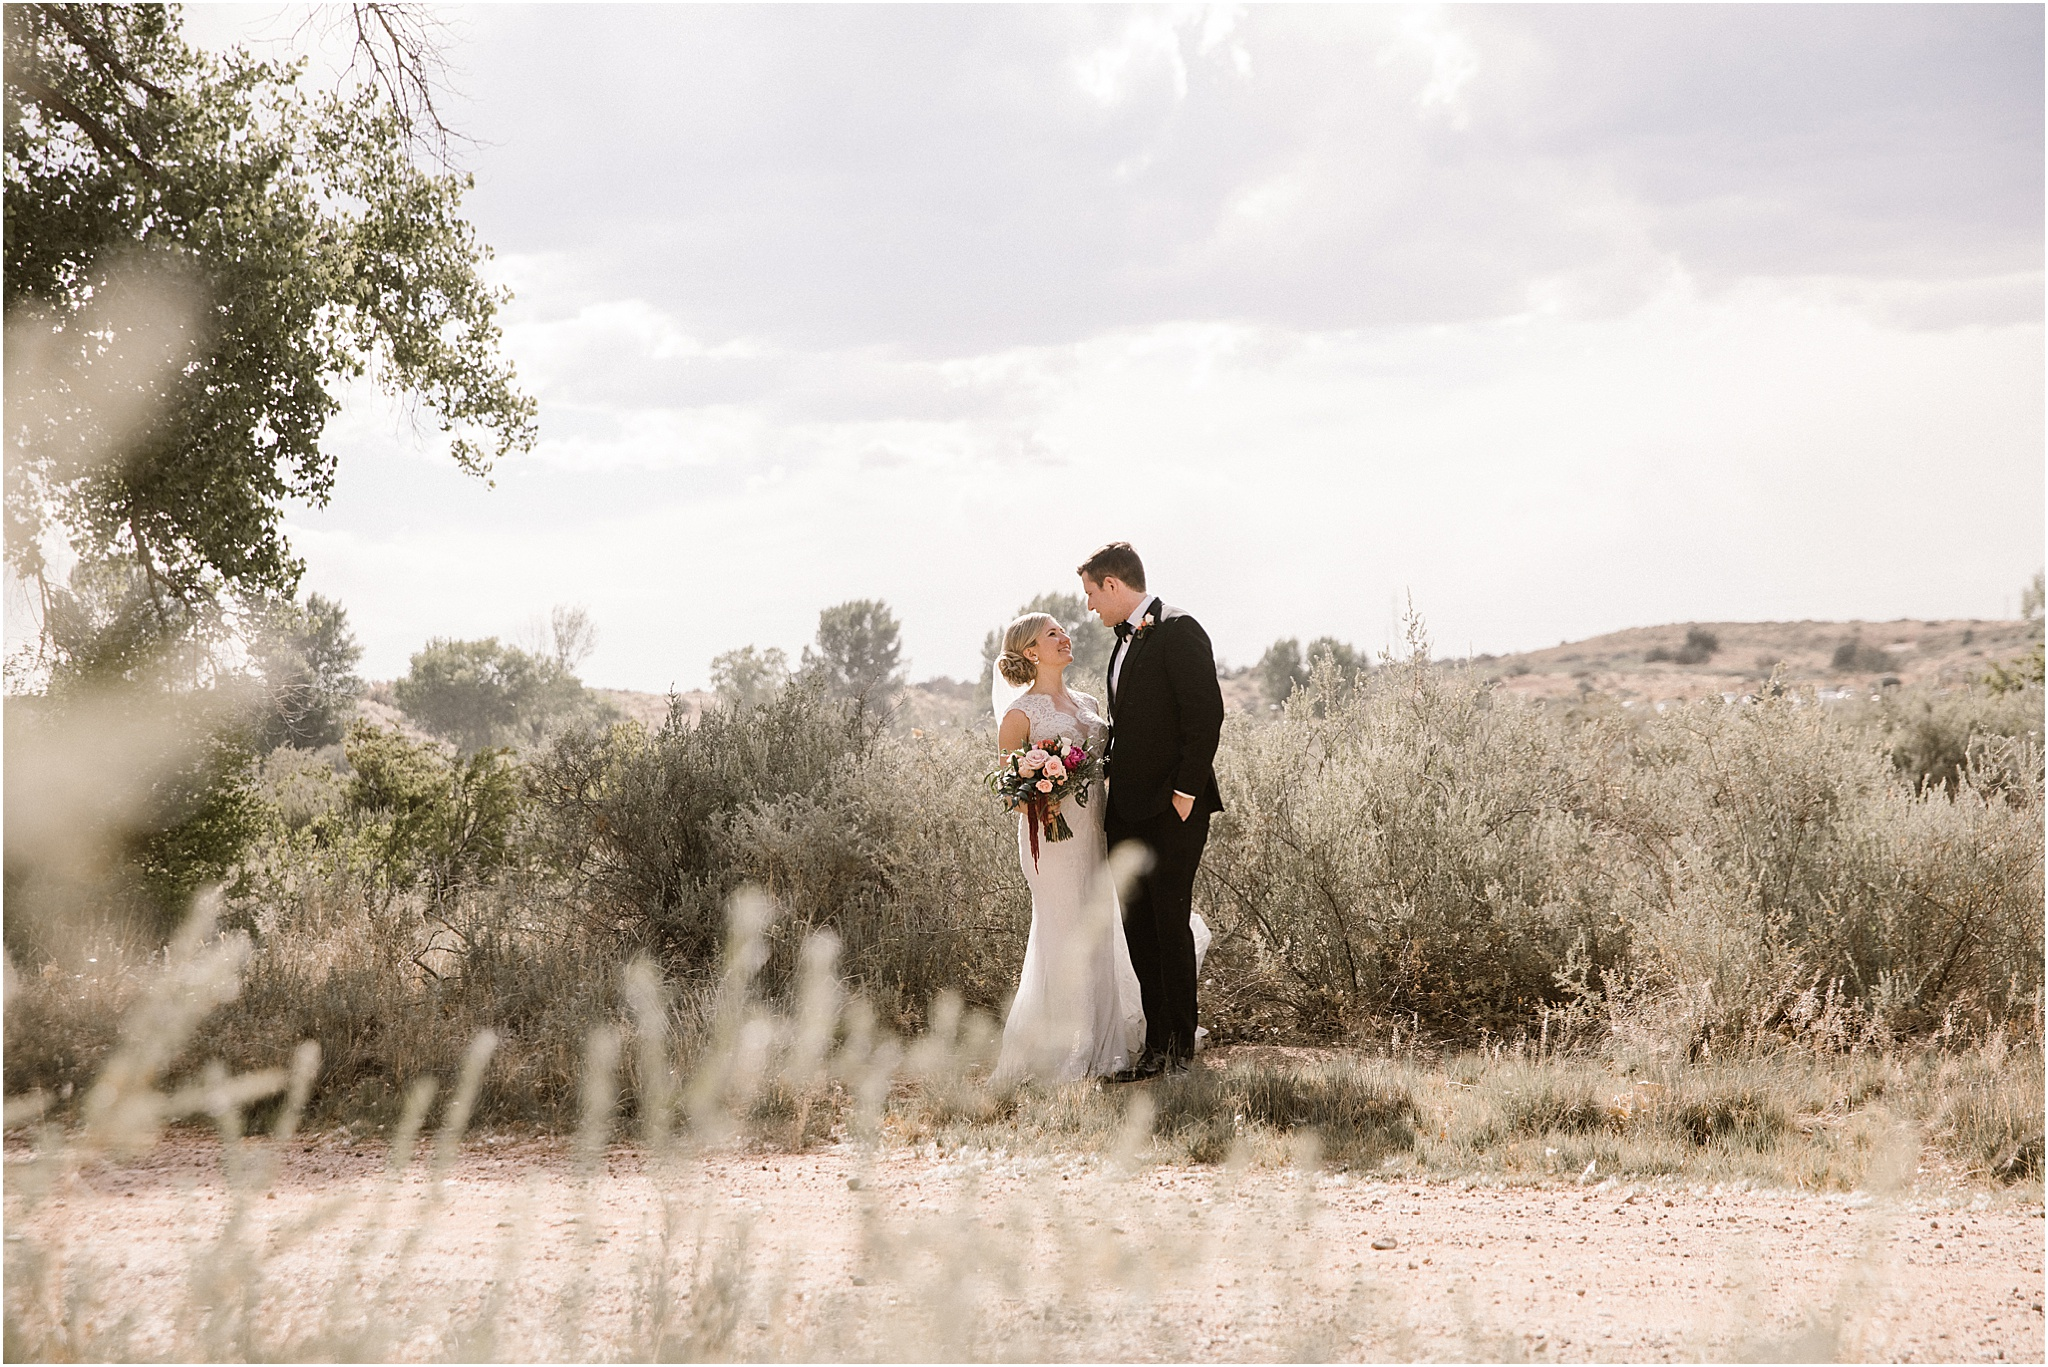 JENNA_JEROME_BLUE ROSE PHOTOGRAPHY_ABQ WEDDING_39